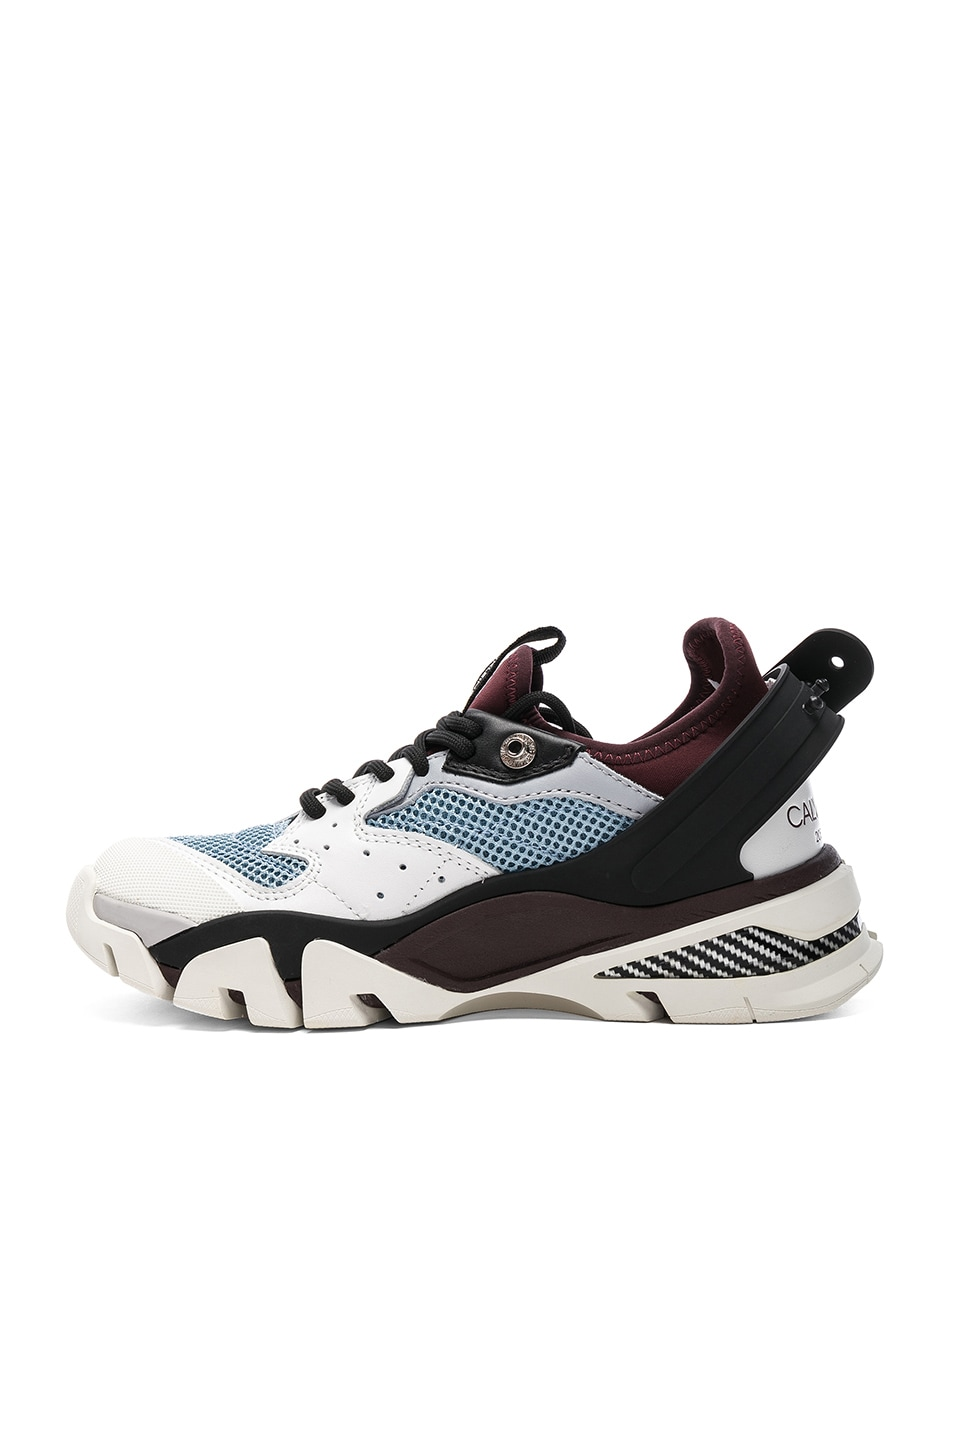 Image 5 of CALVIN KLEIN 205W39NYC Leather Carla Sneakers in White, Azure & Burgundy